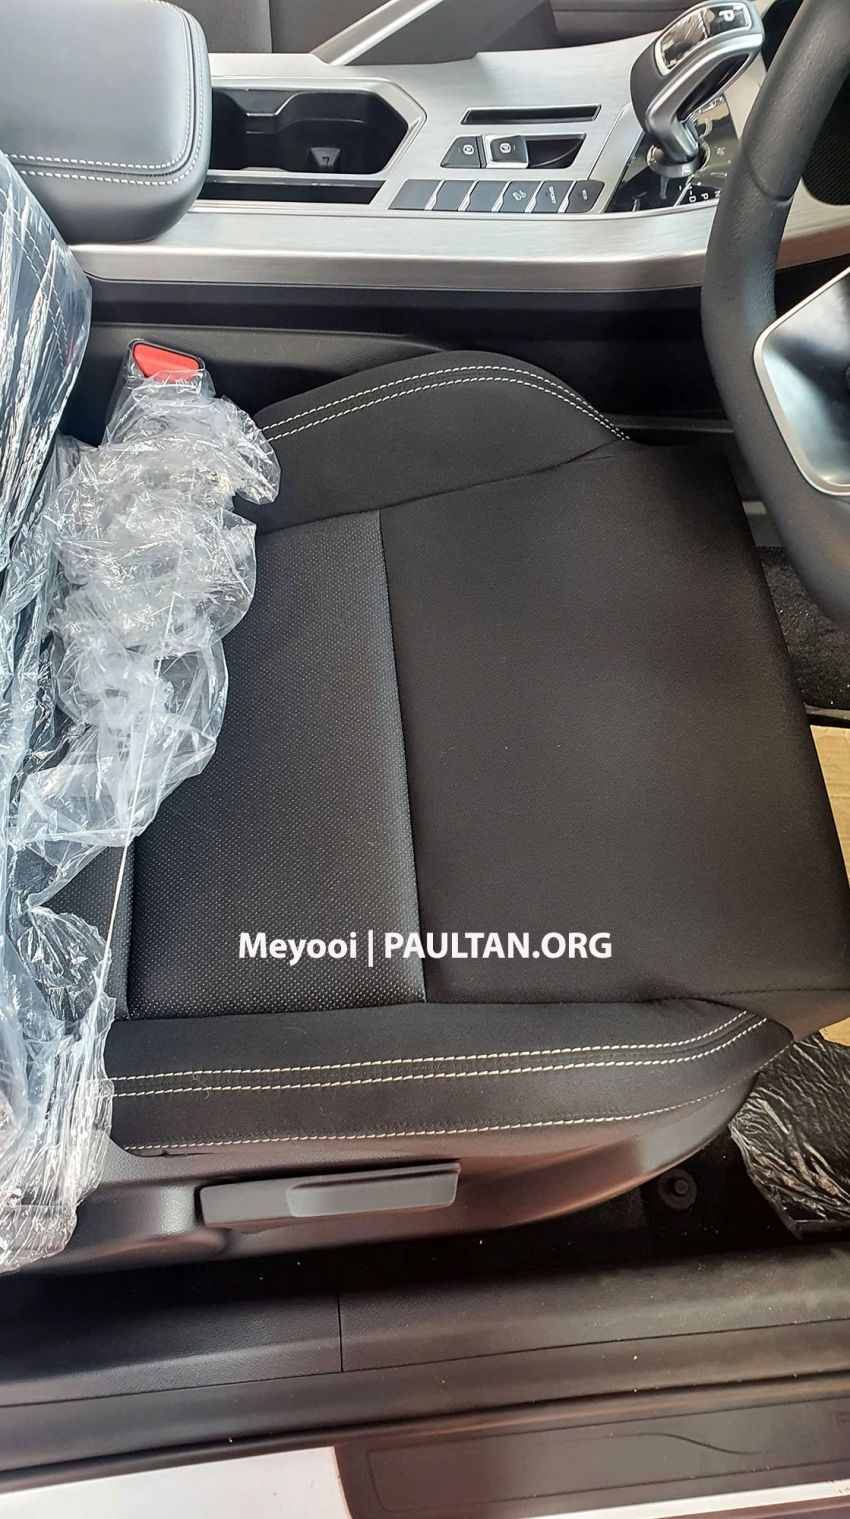 2020 Proton X50 1.5T Standard – first look at the entry-level RM79,200 variant, is the base spec SUV OK? Image #1205212